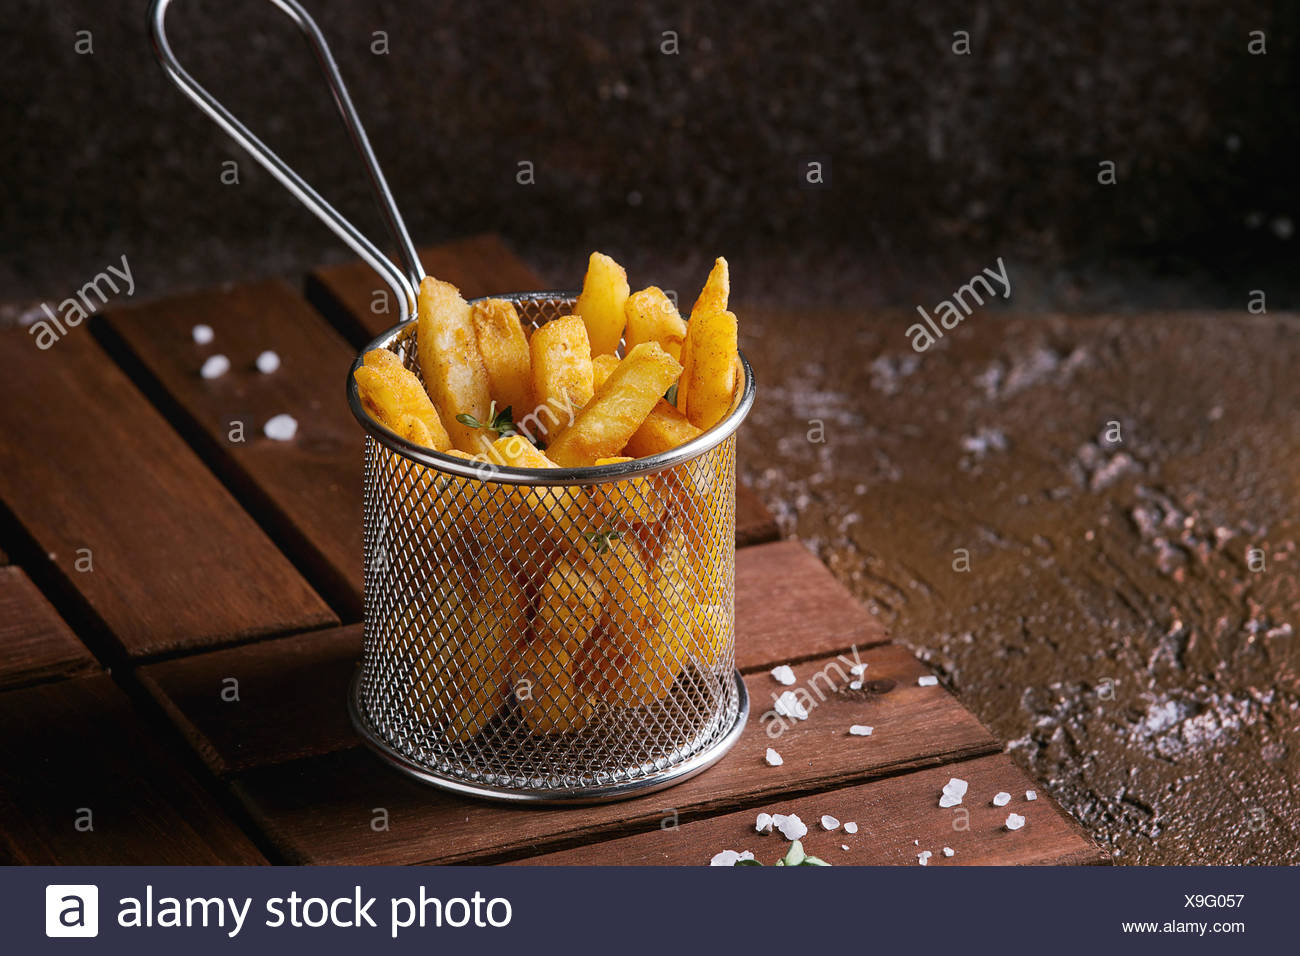 Traditional french fries potatoes served in frying basket with salt, thyme on wooden board over brown texture background. Homemade fast food - Stock Image